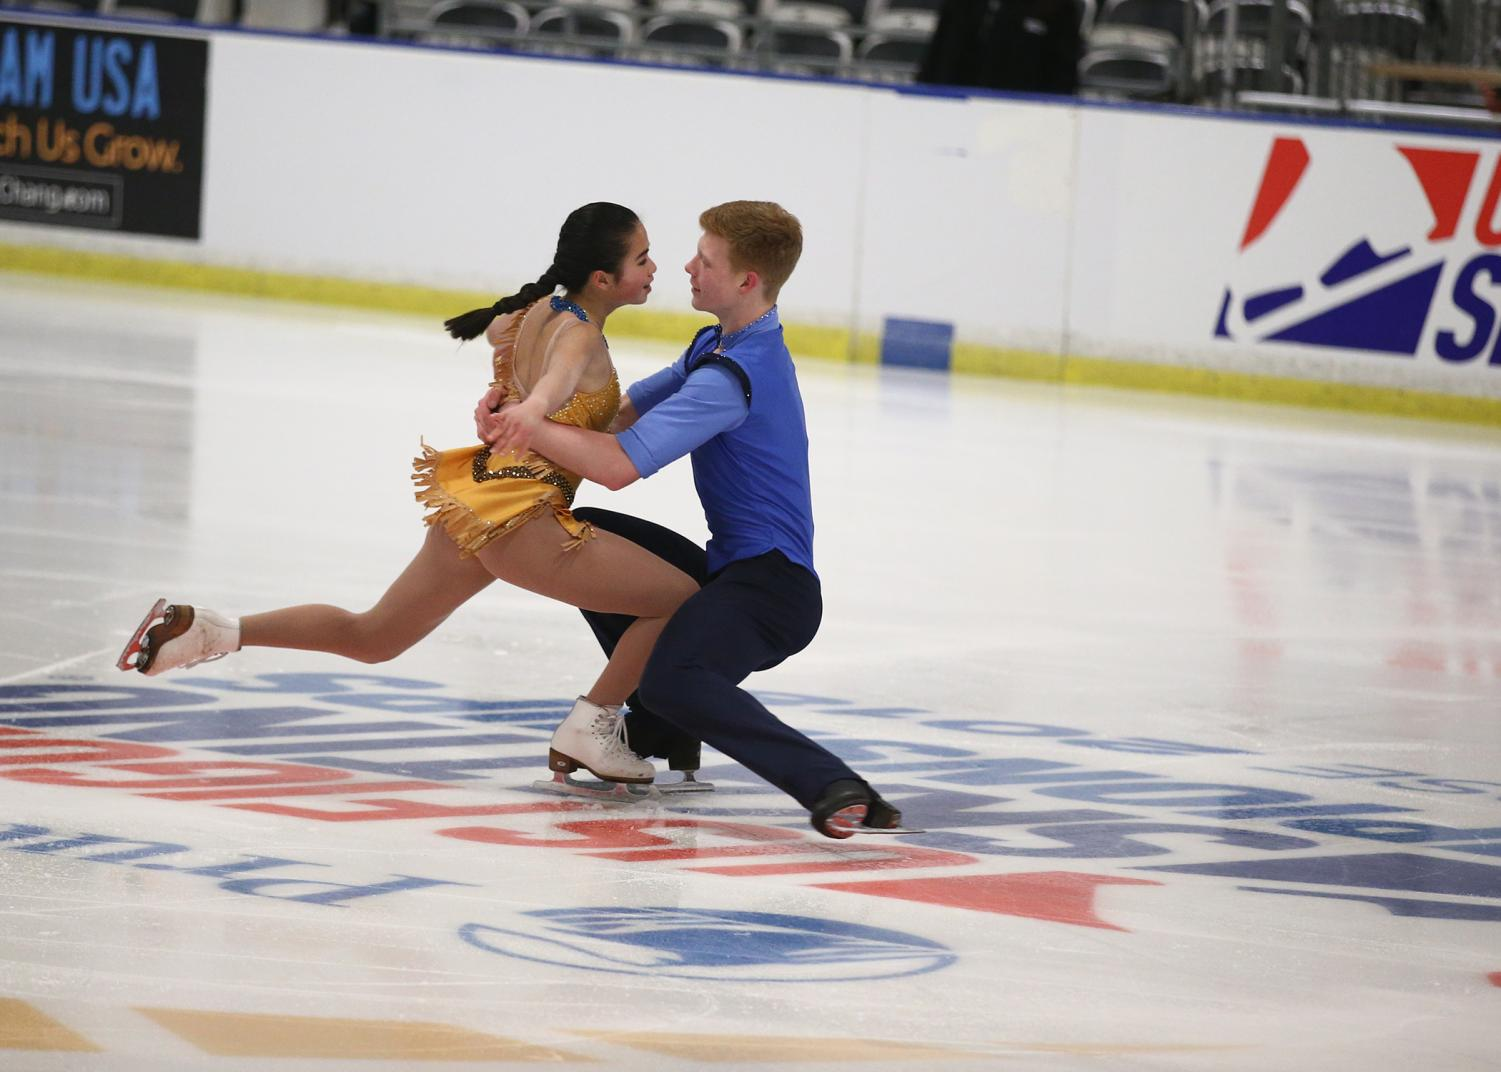 Sophomore Jade Hom competed in figure skating competitions at a national level and recently decided to end her career after her partner went to college and she experienced complicating injuries.